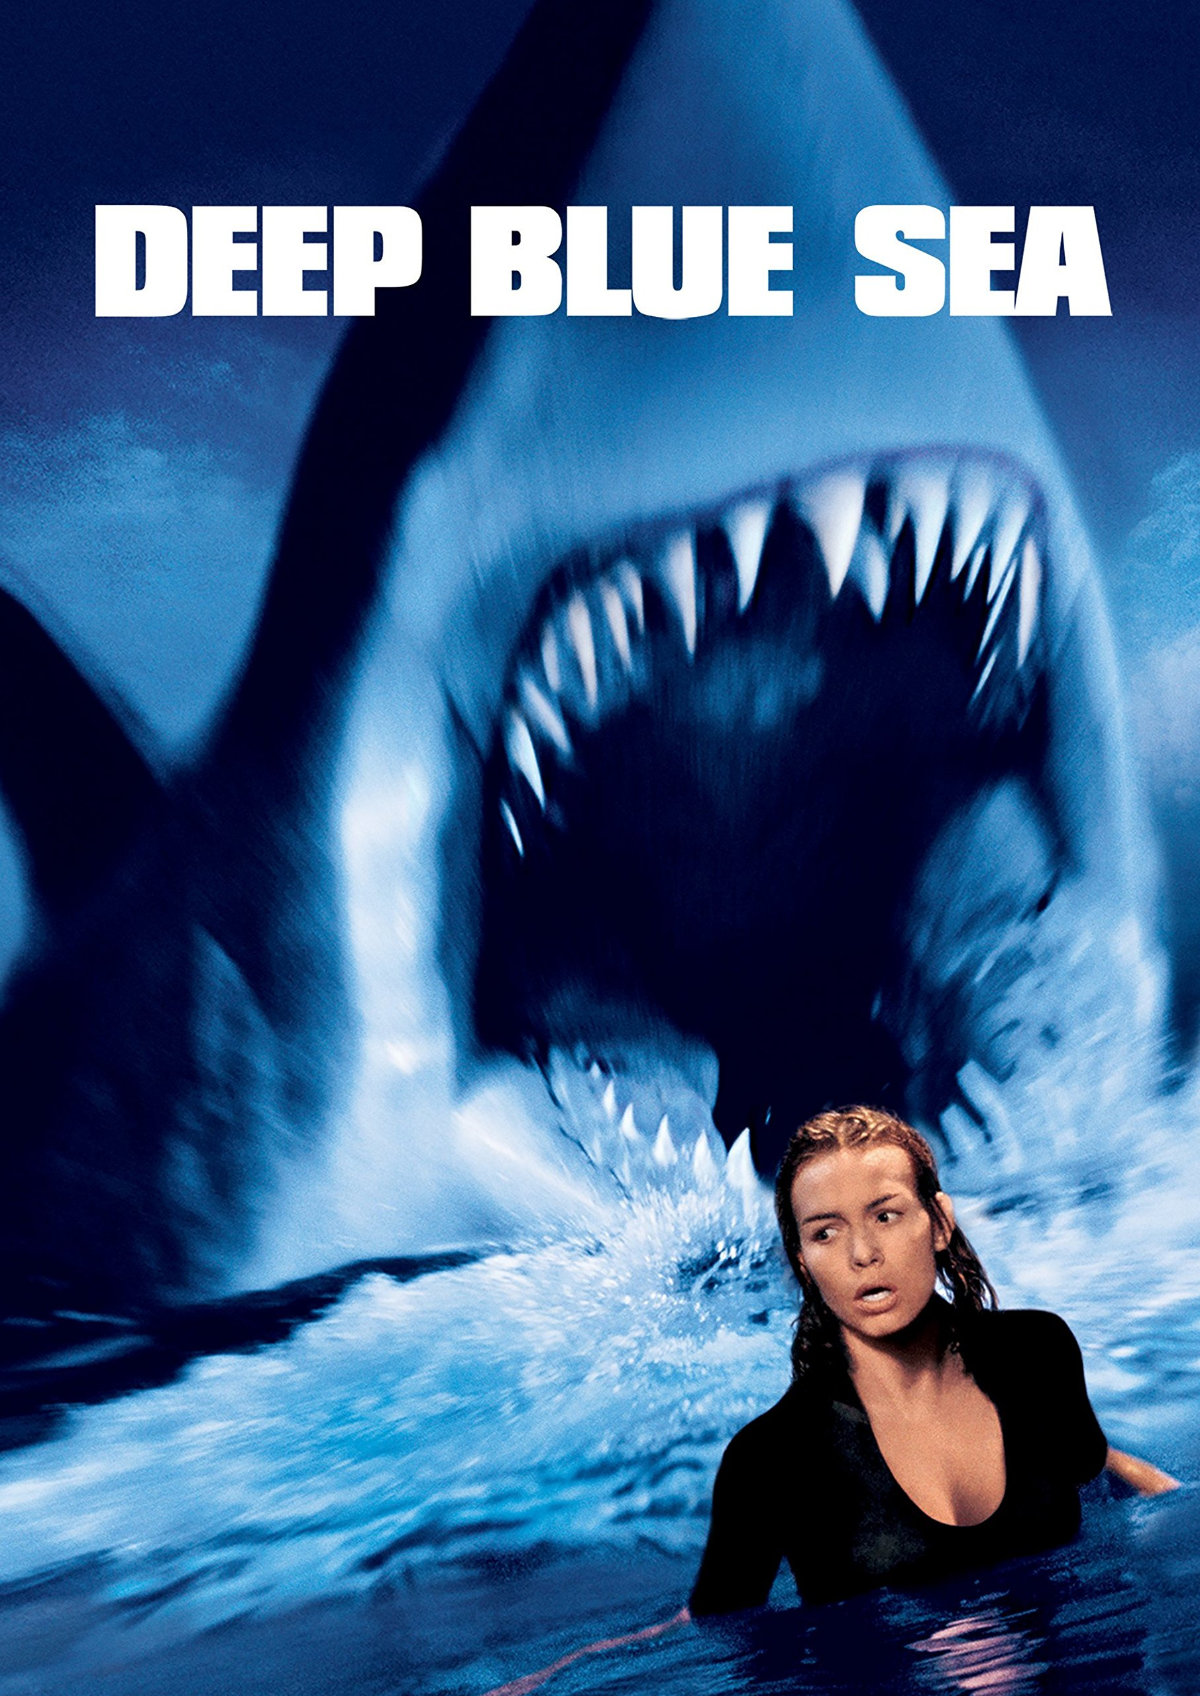 'Deep Blue Sea' movie poster